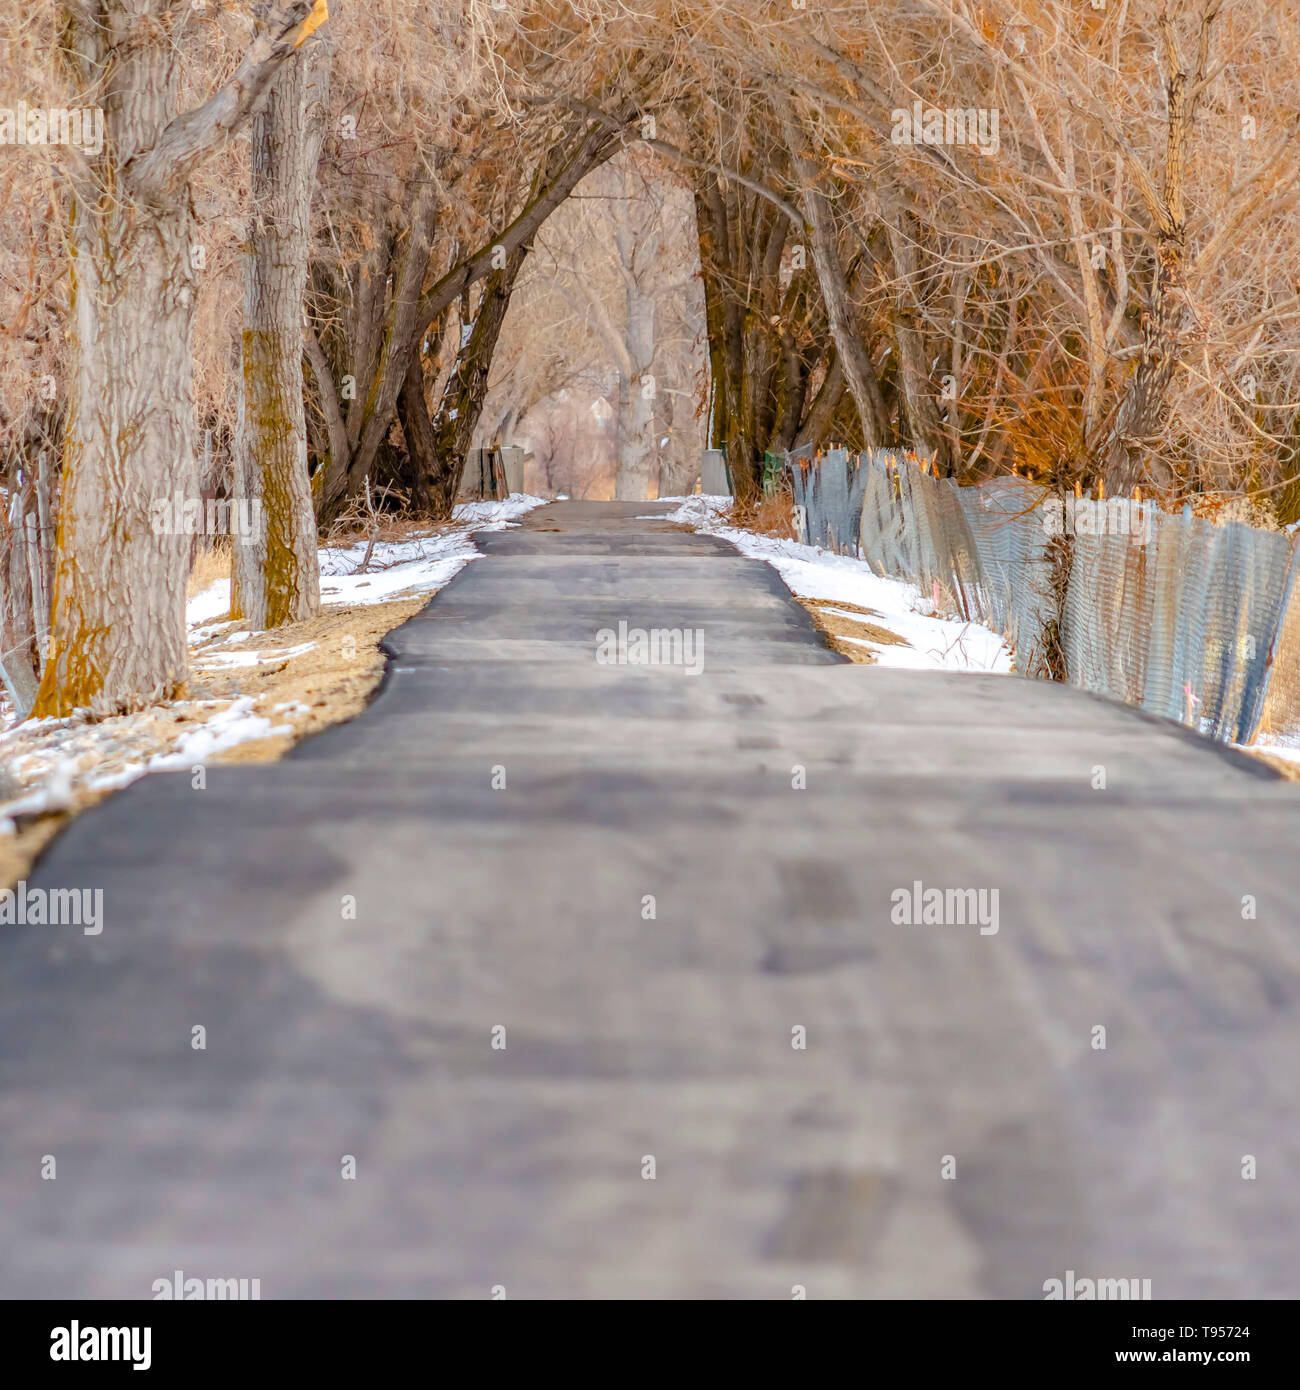 Clear Square Road under a canopy of leafless branches from the row of tall hibernating trees - Stock Image